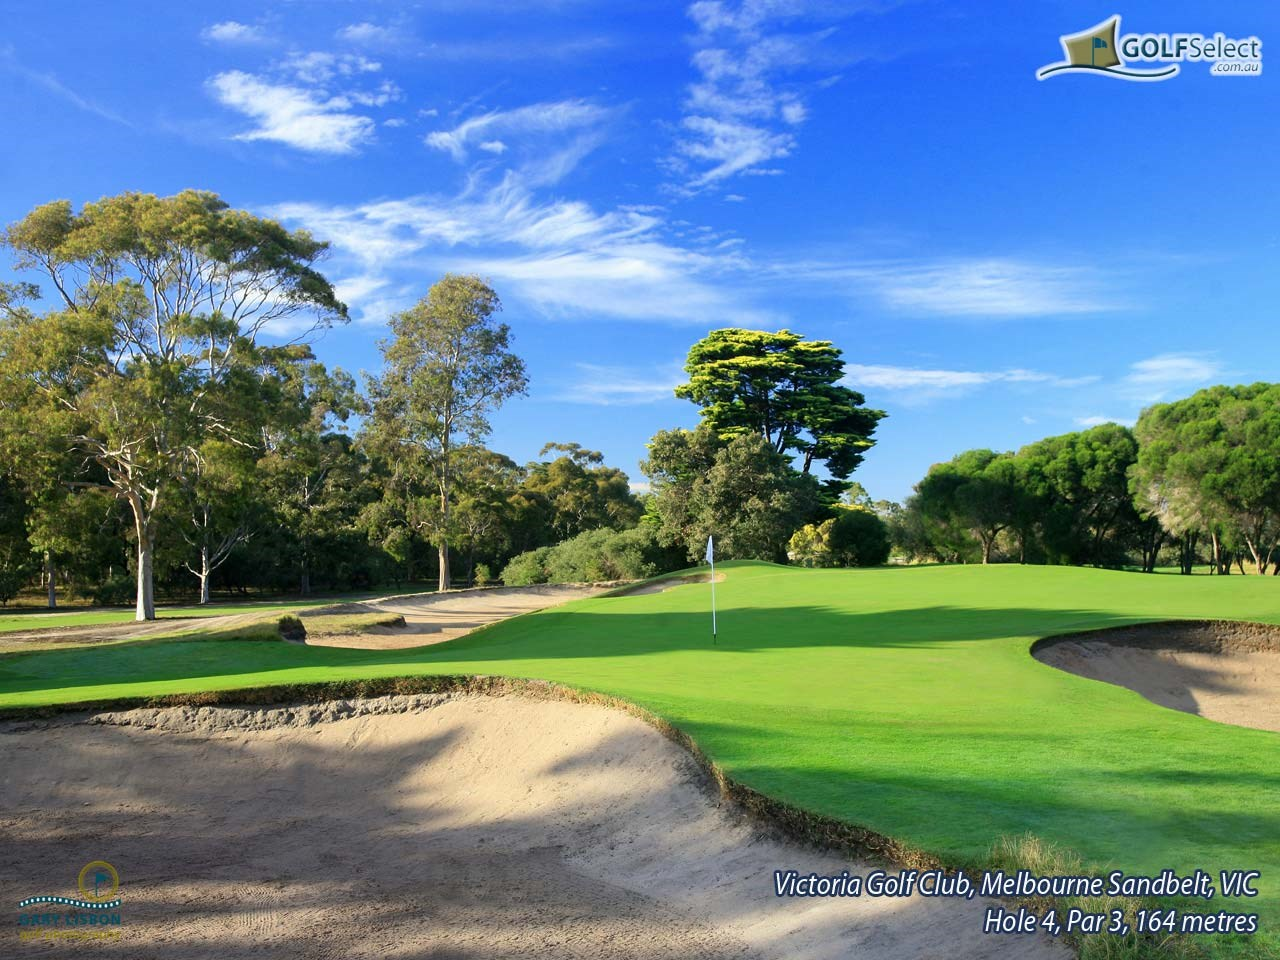 Victoria Golf Club Hole 4, Par 3, 165 metres